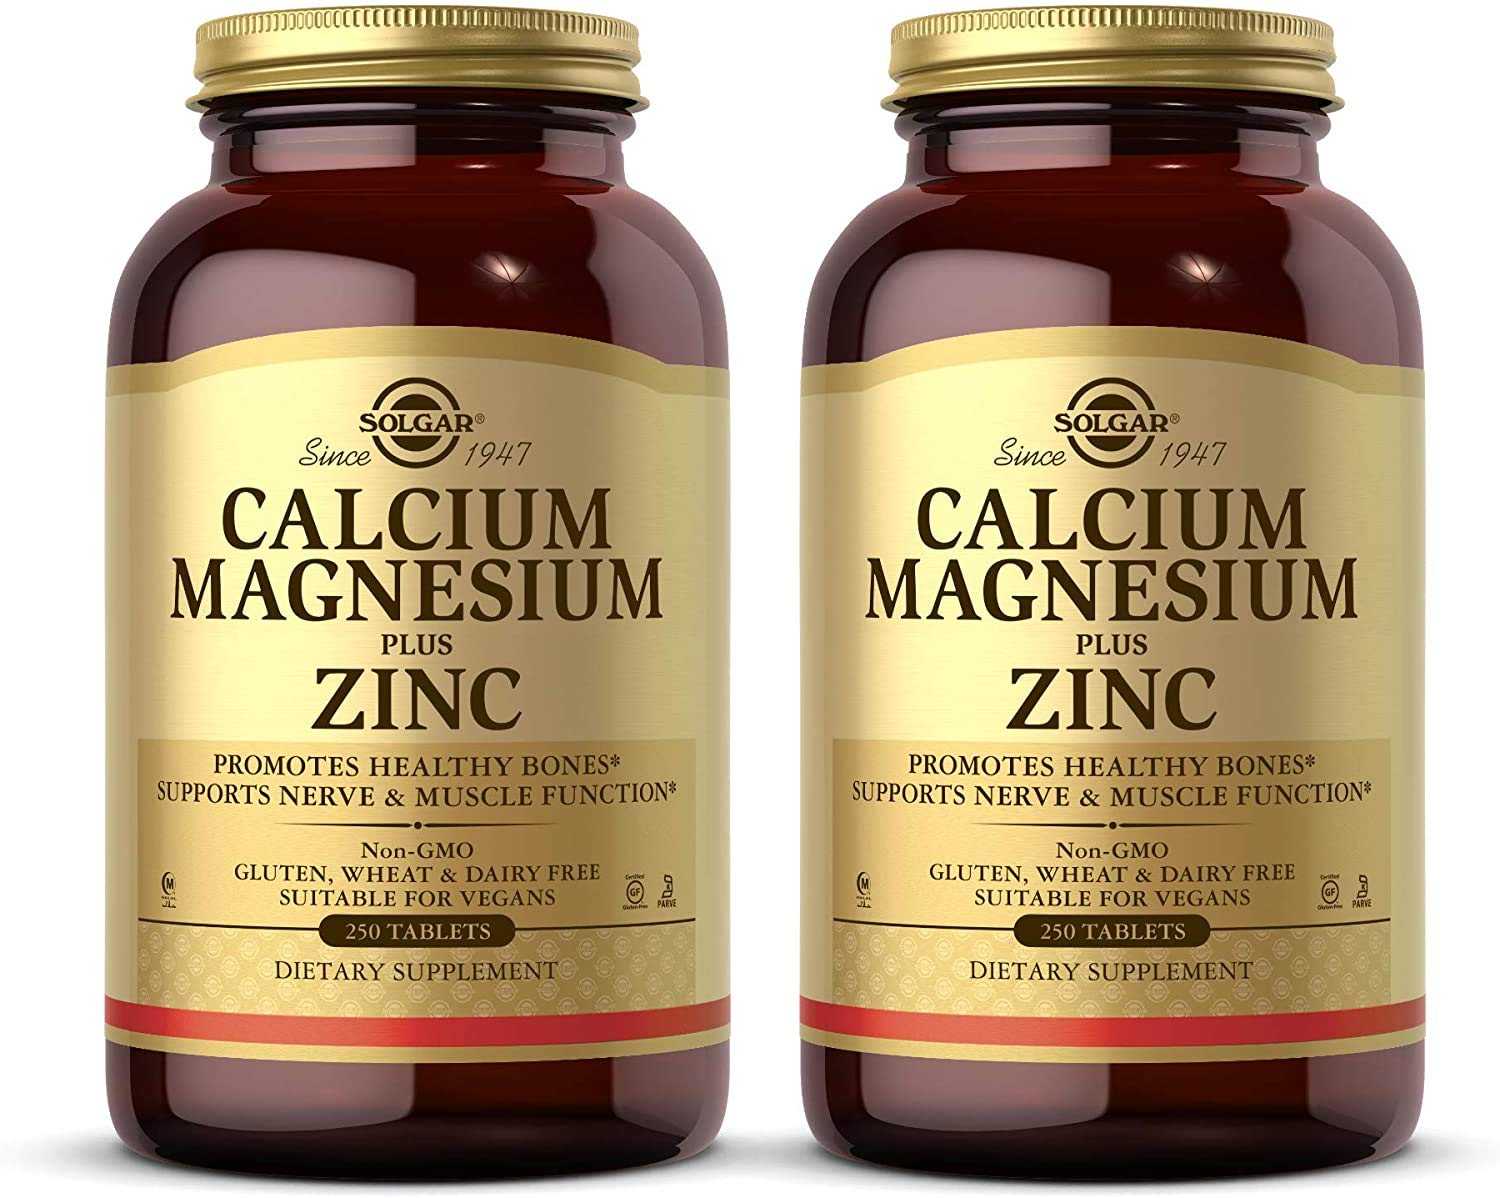 Solgar Calcium Magnesium Plus Zinc, 250 Tablets - Pack of 2 - Promotes Bone & Muscle Health - Collagen Synthesis - Non-GMO, Vegan, Gluten Free, Dairy Free, Kosher, Halal - 166 Total Servings